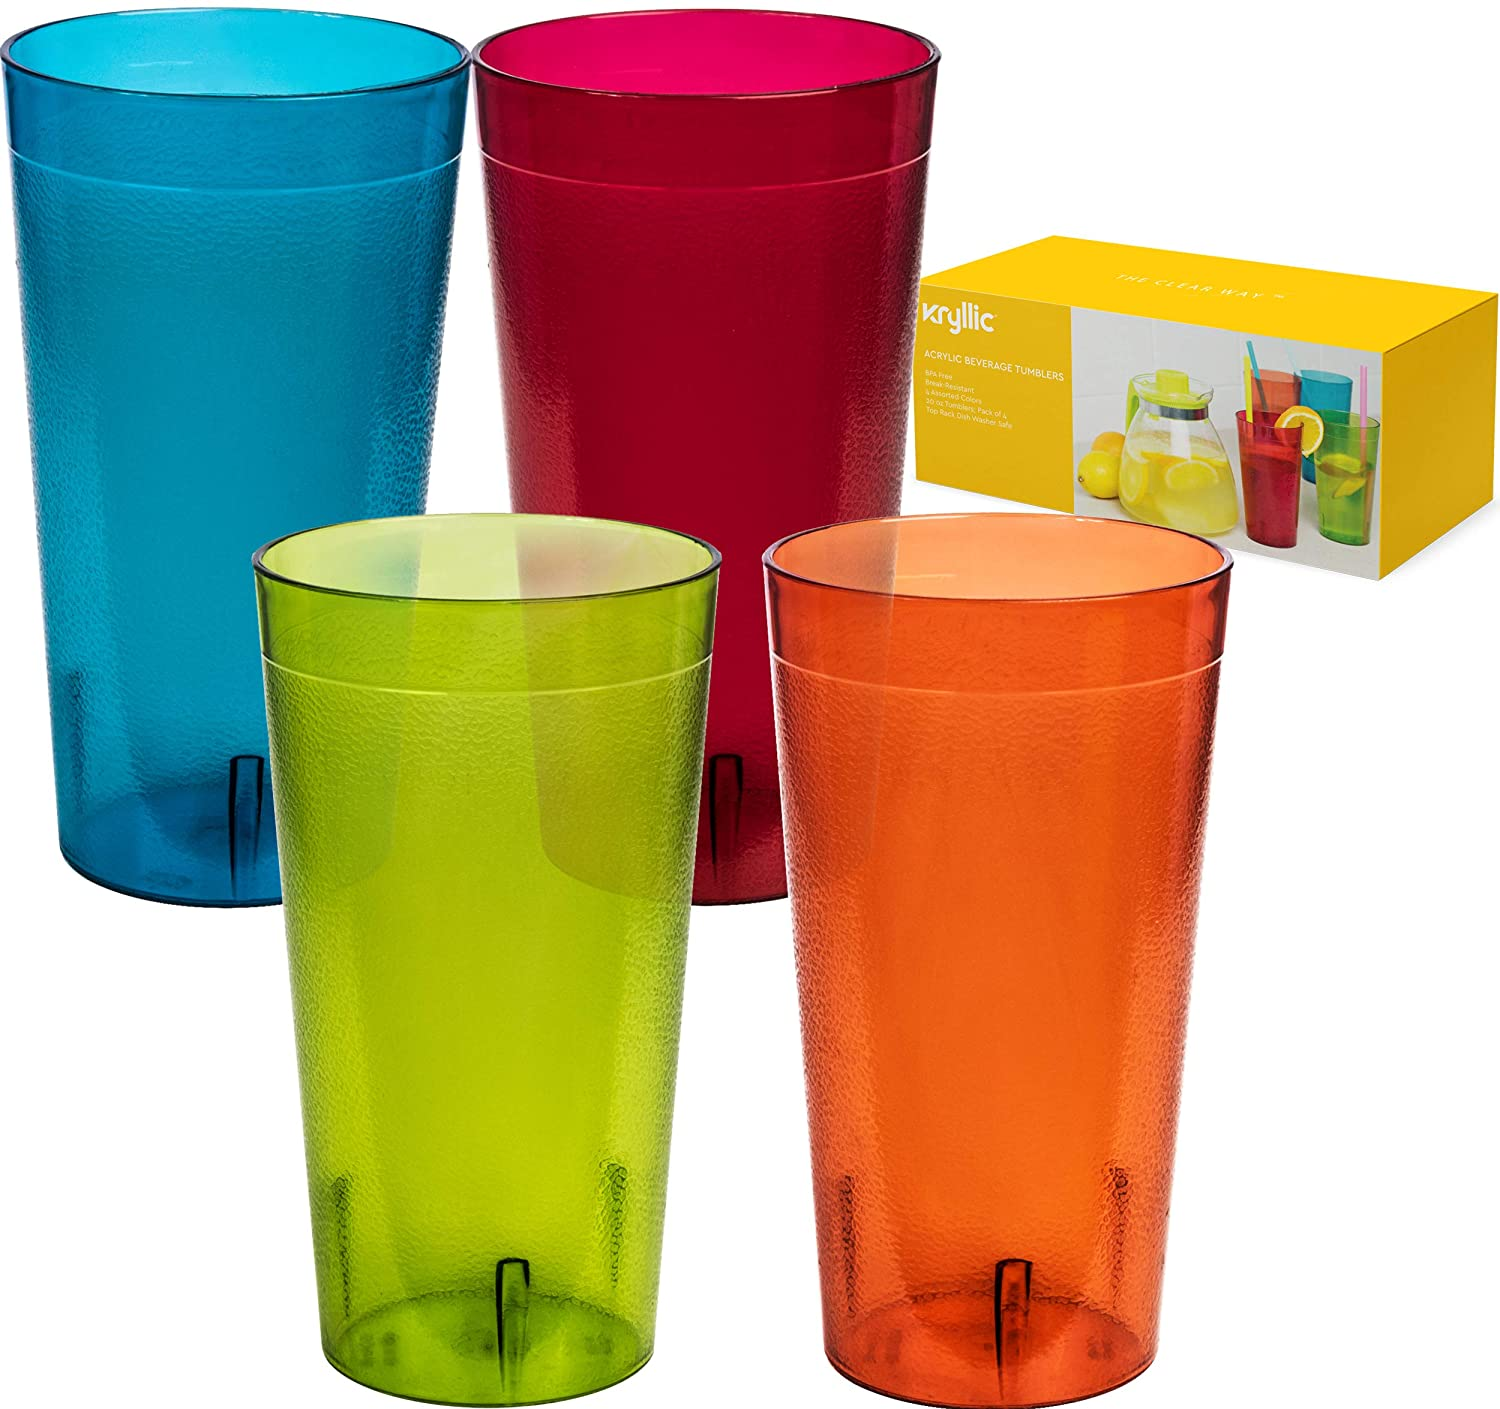 f51d38ddf17 Reusable Plastic Cup Drinkware Tumblers - 4 Assorted Colors Break Resistant 20  oz Dishwasher Safe Drinking Stacking Water Glasses Cups!